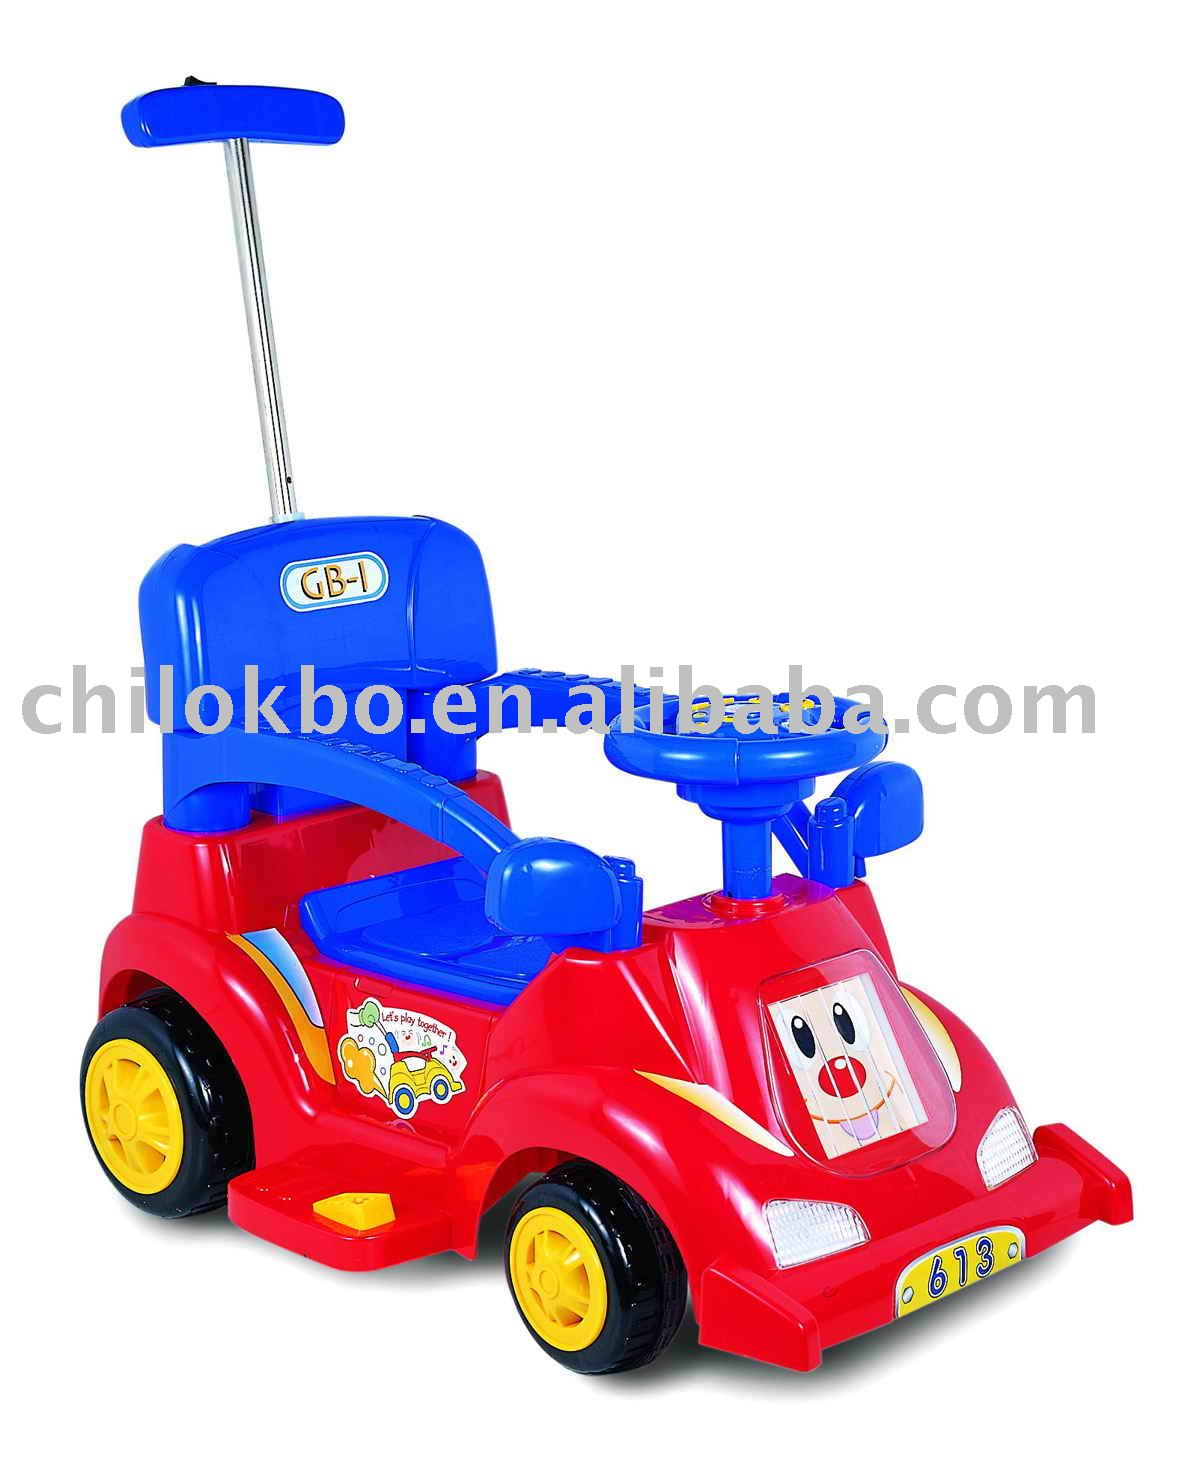 Baby Toy Car : Baby toys car imgkid the image kid has it